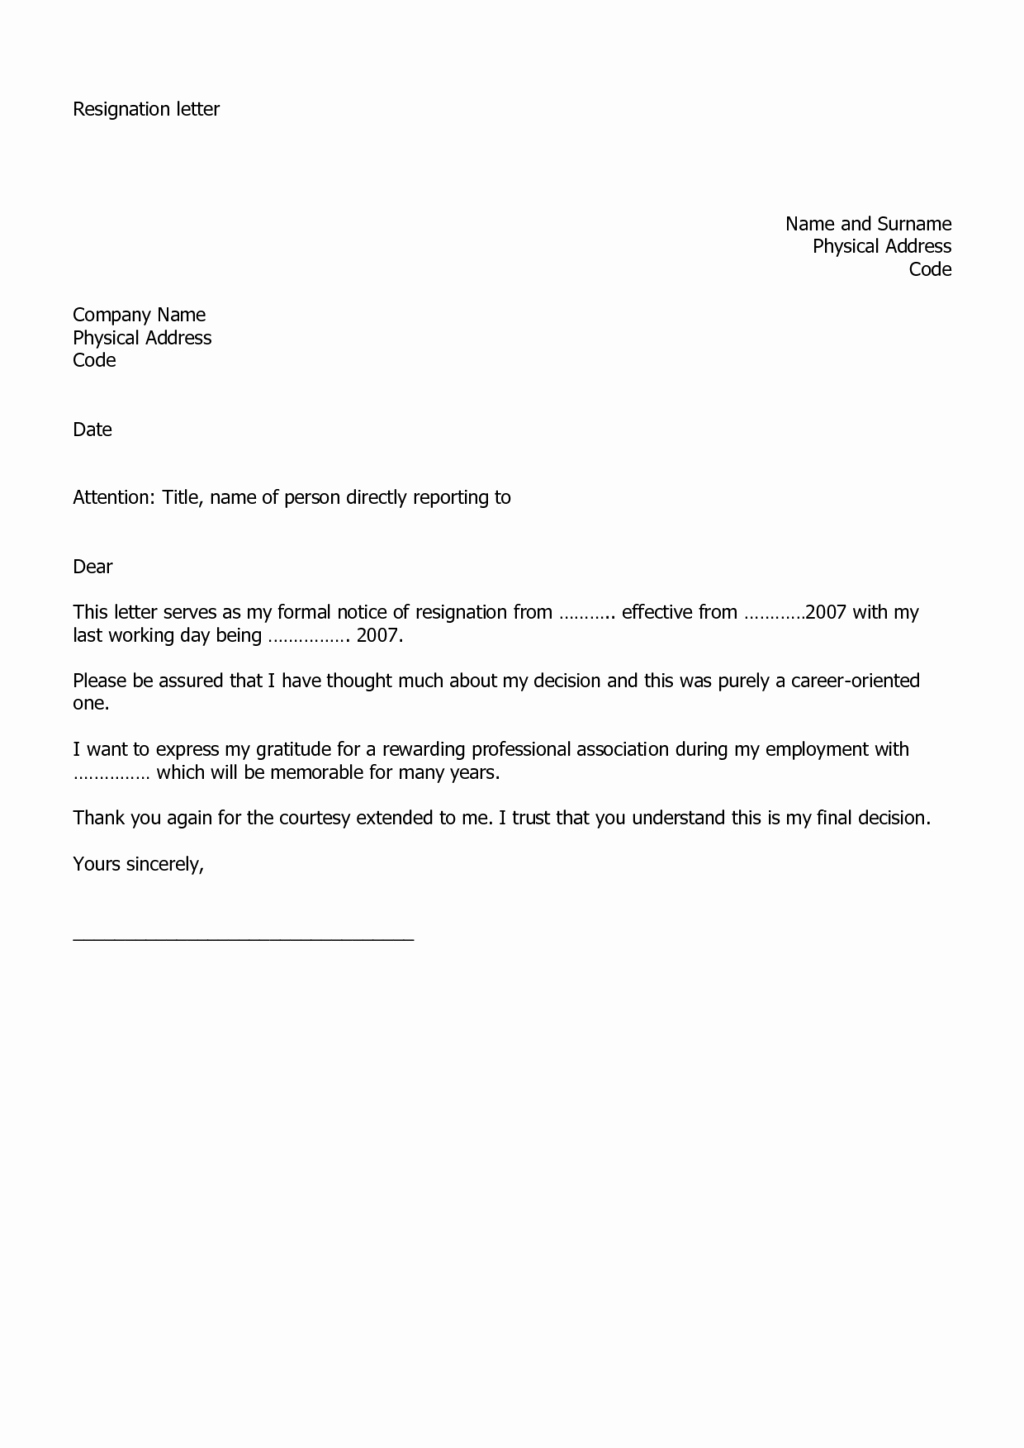 Resignation Letter Template Free Best Of Fillable and Easy to Use Employee Resignation Letter